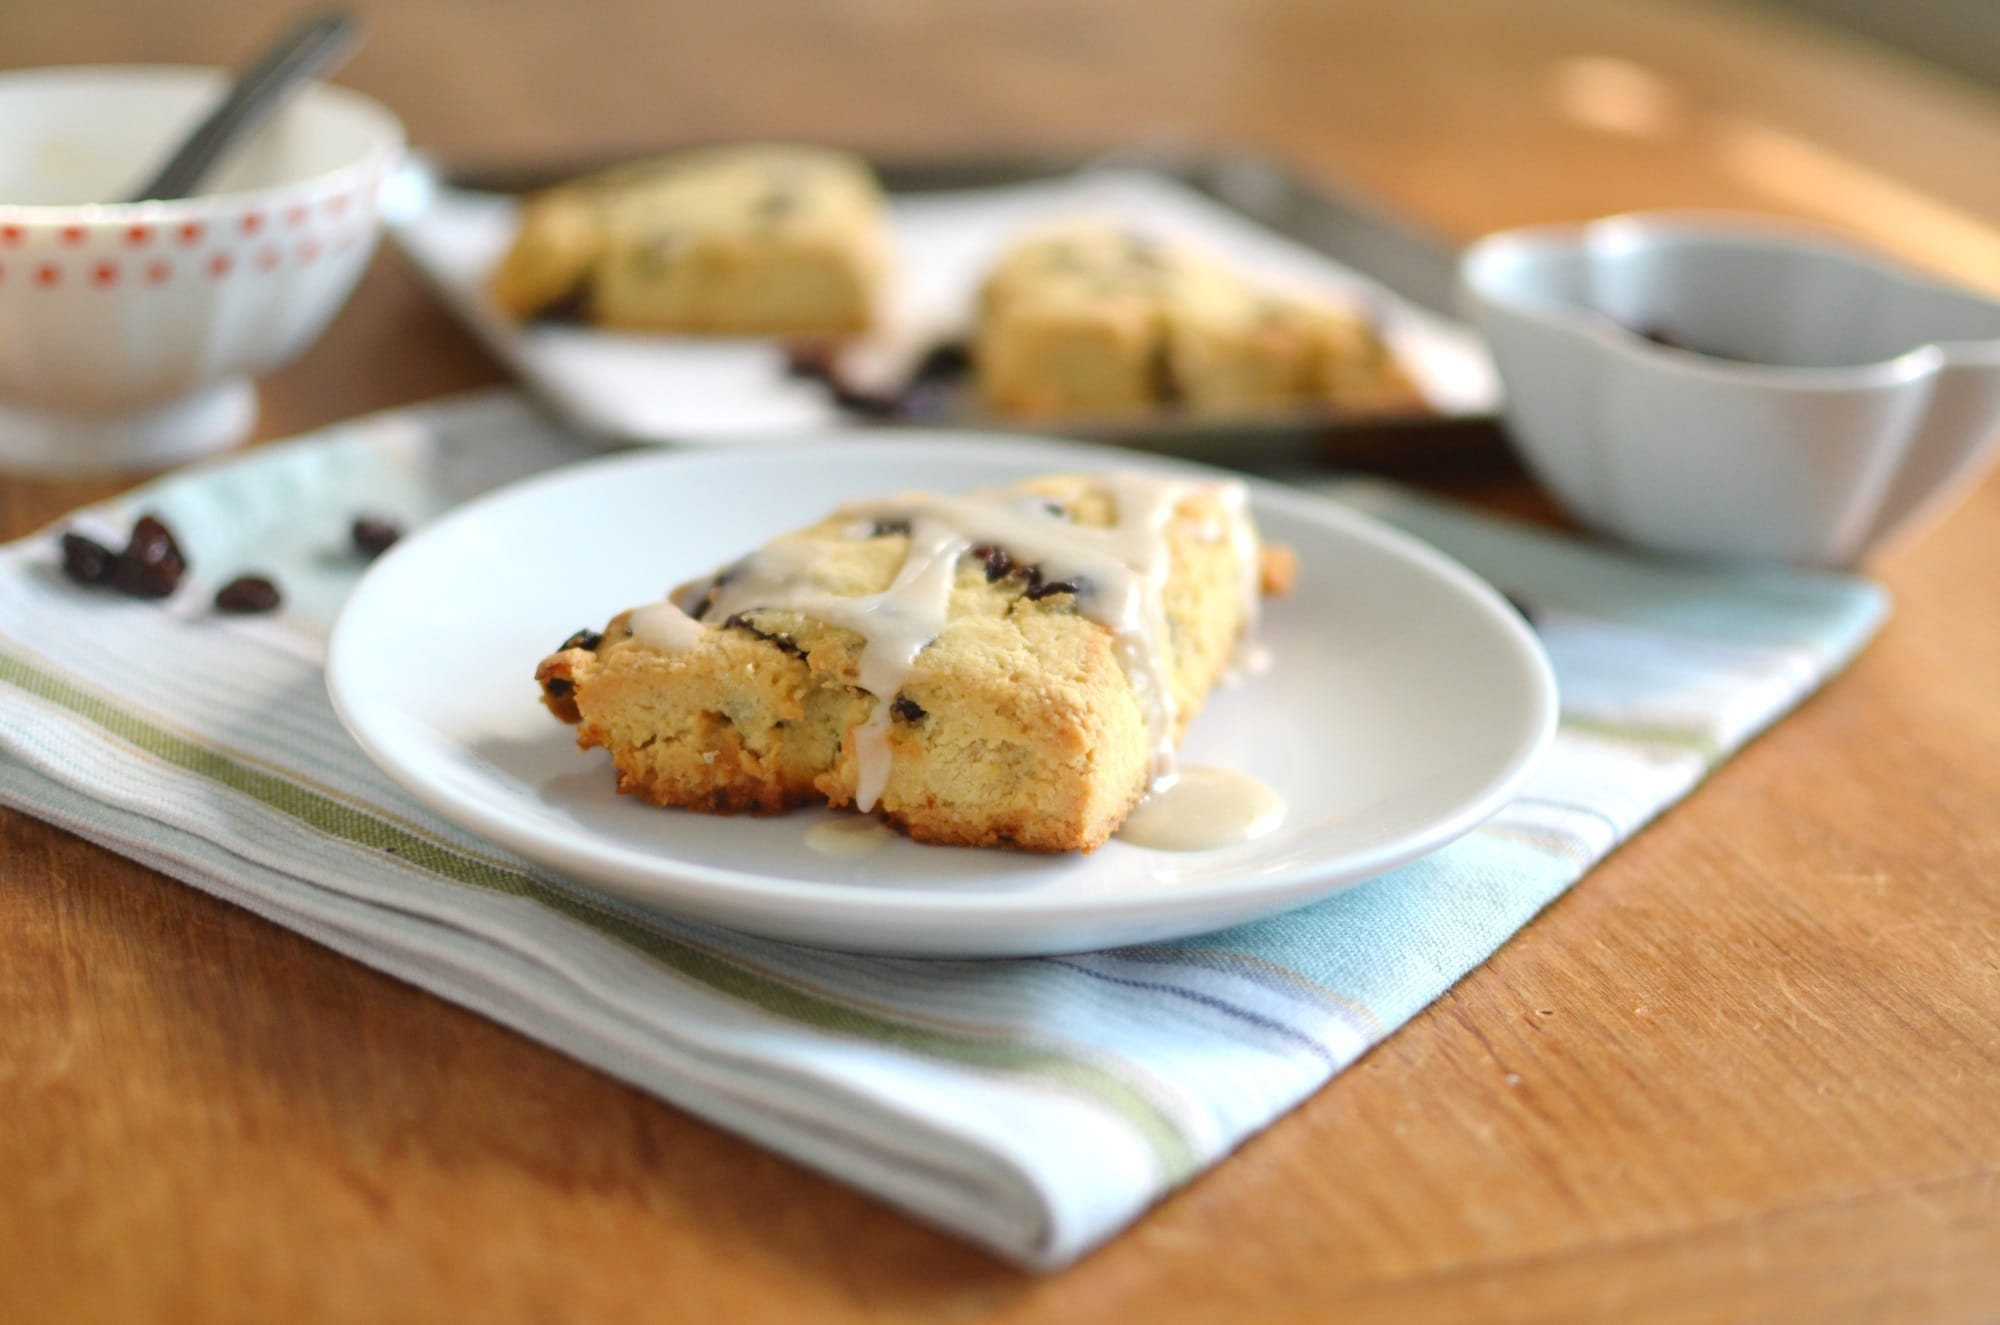 The BEST Cinnamon Raisin Gluten Free Scones - So Easy! - 24 Carrot ...